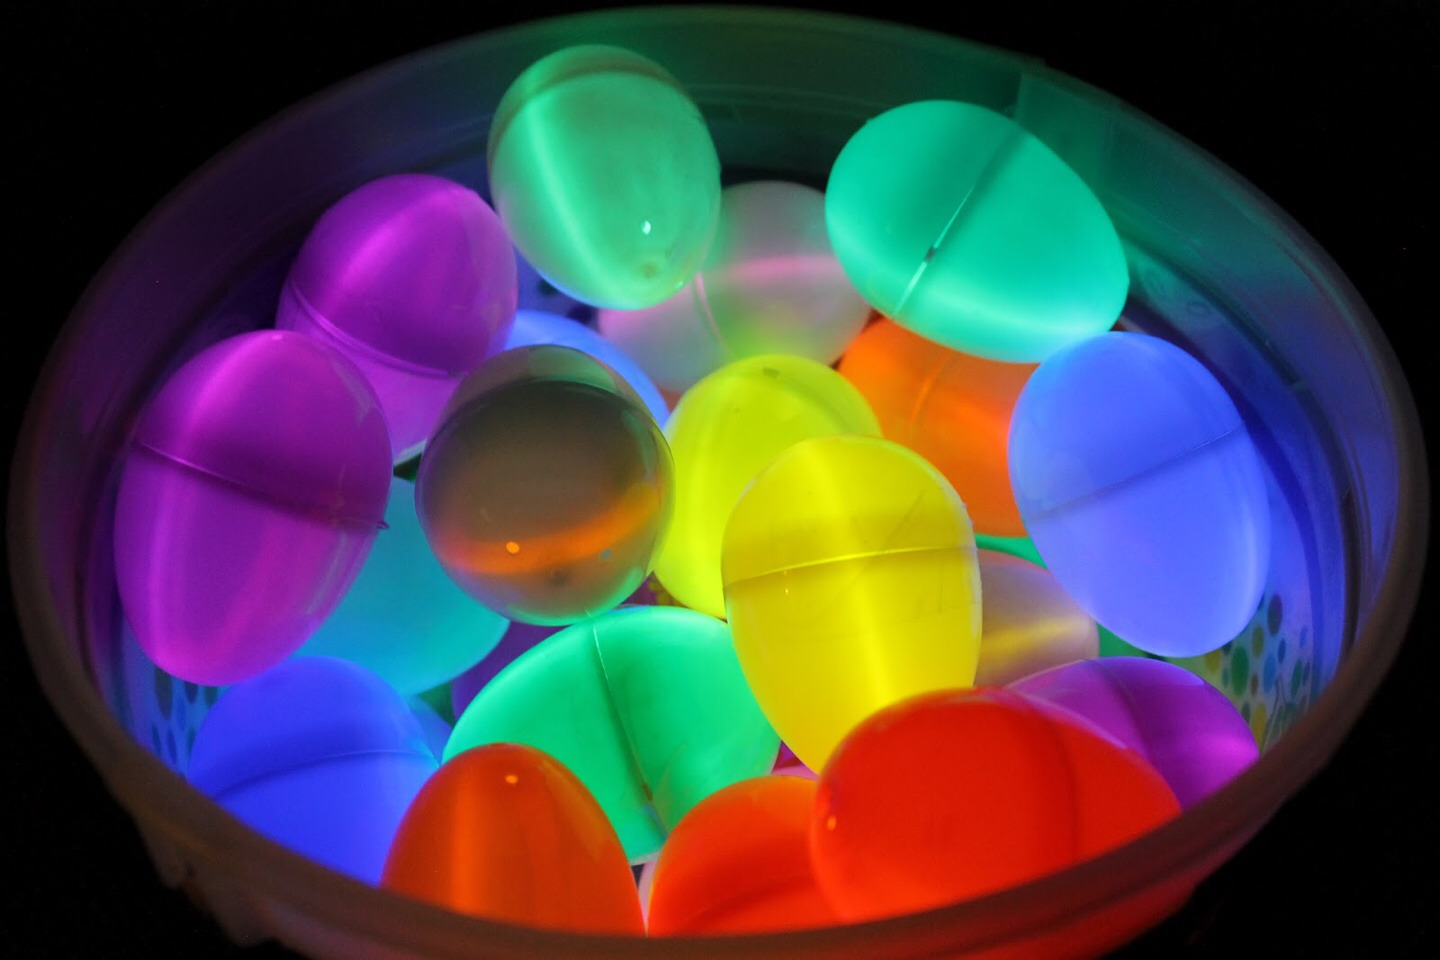 Glow in the dark Easter eggs: you put a mini glow stick in a plastic Easter egg, you can also put candy as long as it doesn't cover the light. This makes Easter egg hunts more fun and you can play it at night!!! (Just make sure to wear bug spray if there are lots of Mosquitos were you live)